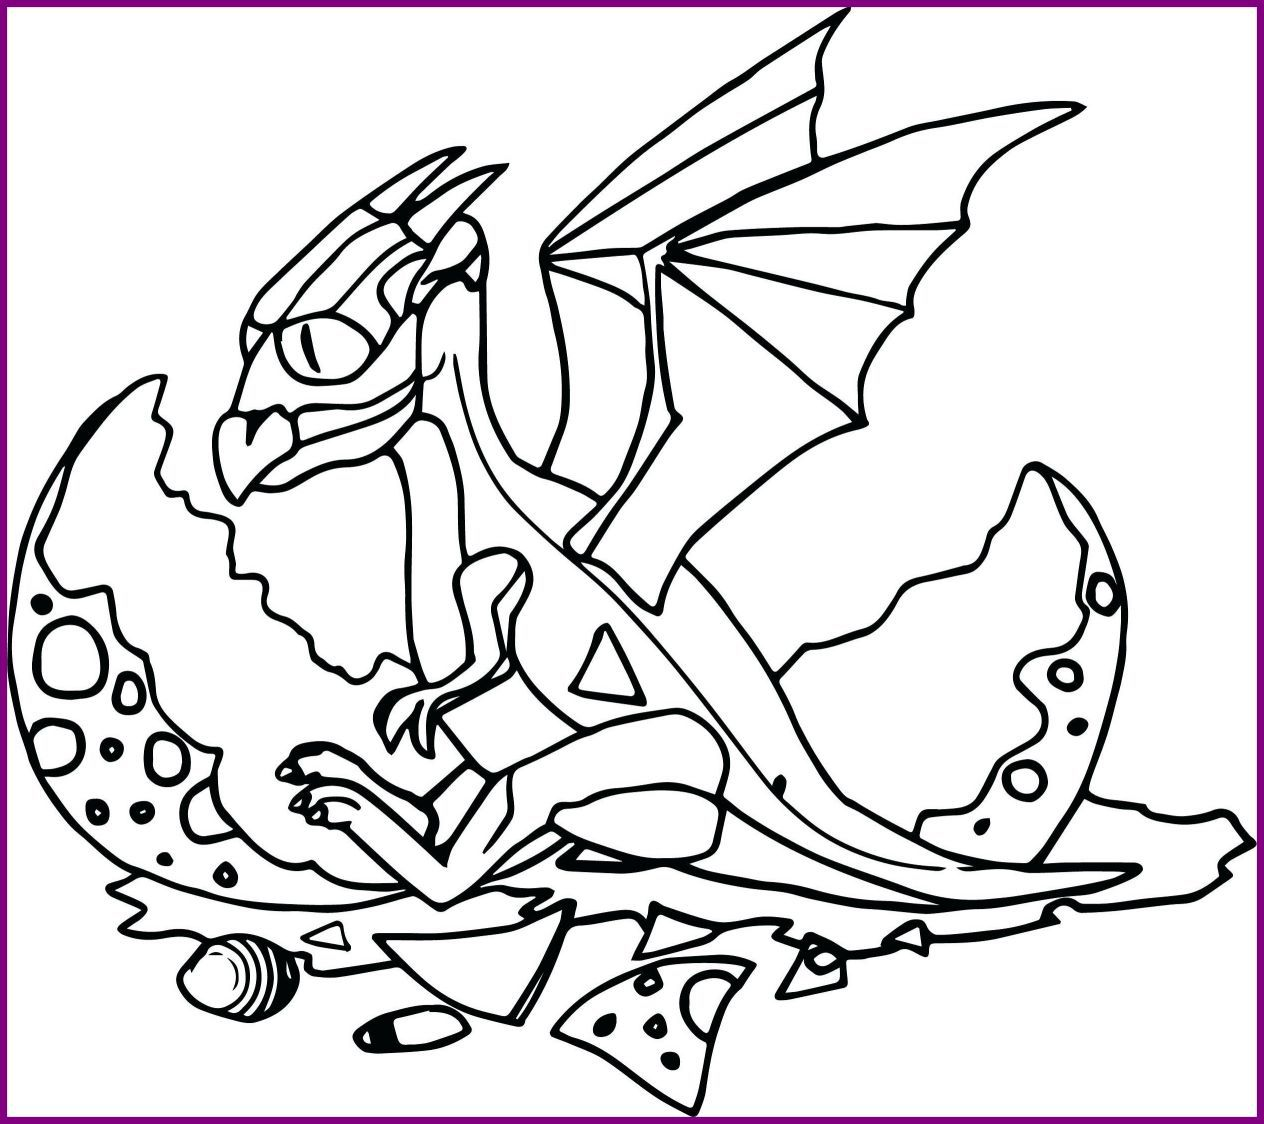 Brilliant Ukrainian Egg Coloring Pages At Getdrawings Com Free For Interior Design Ideas Gentotthenellocom